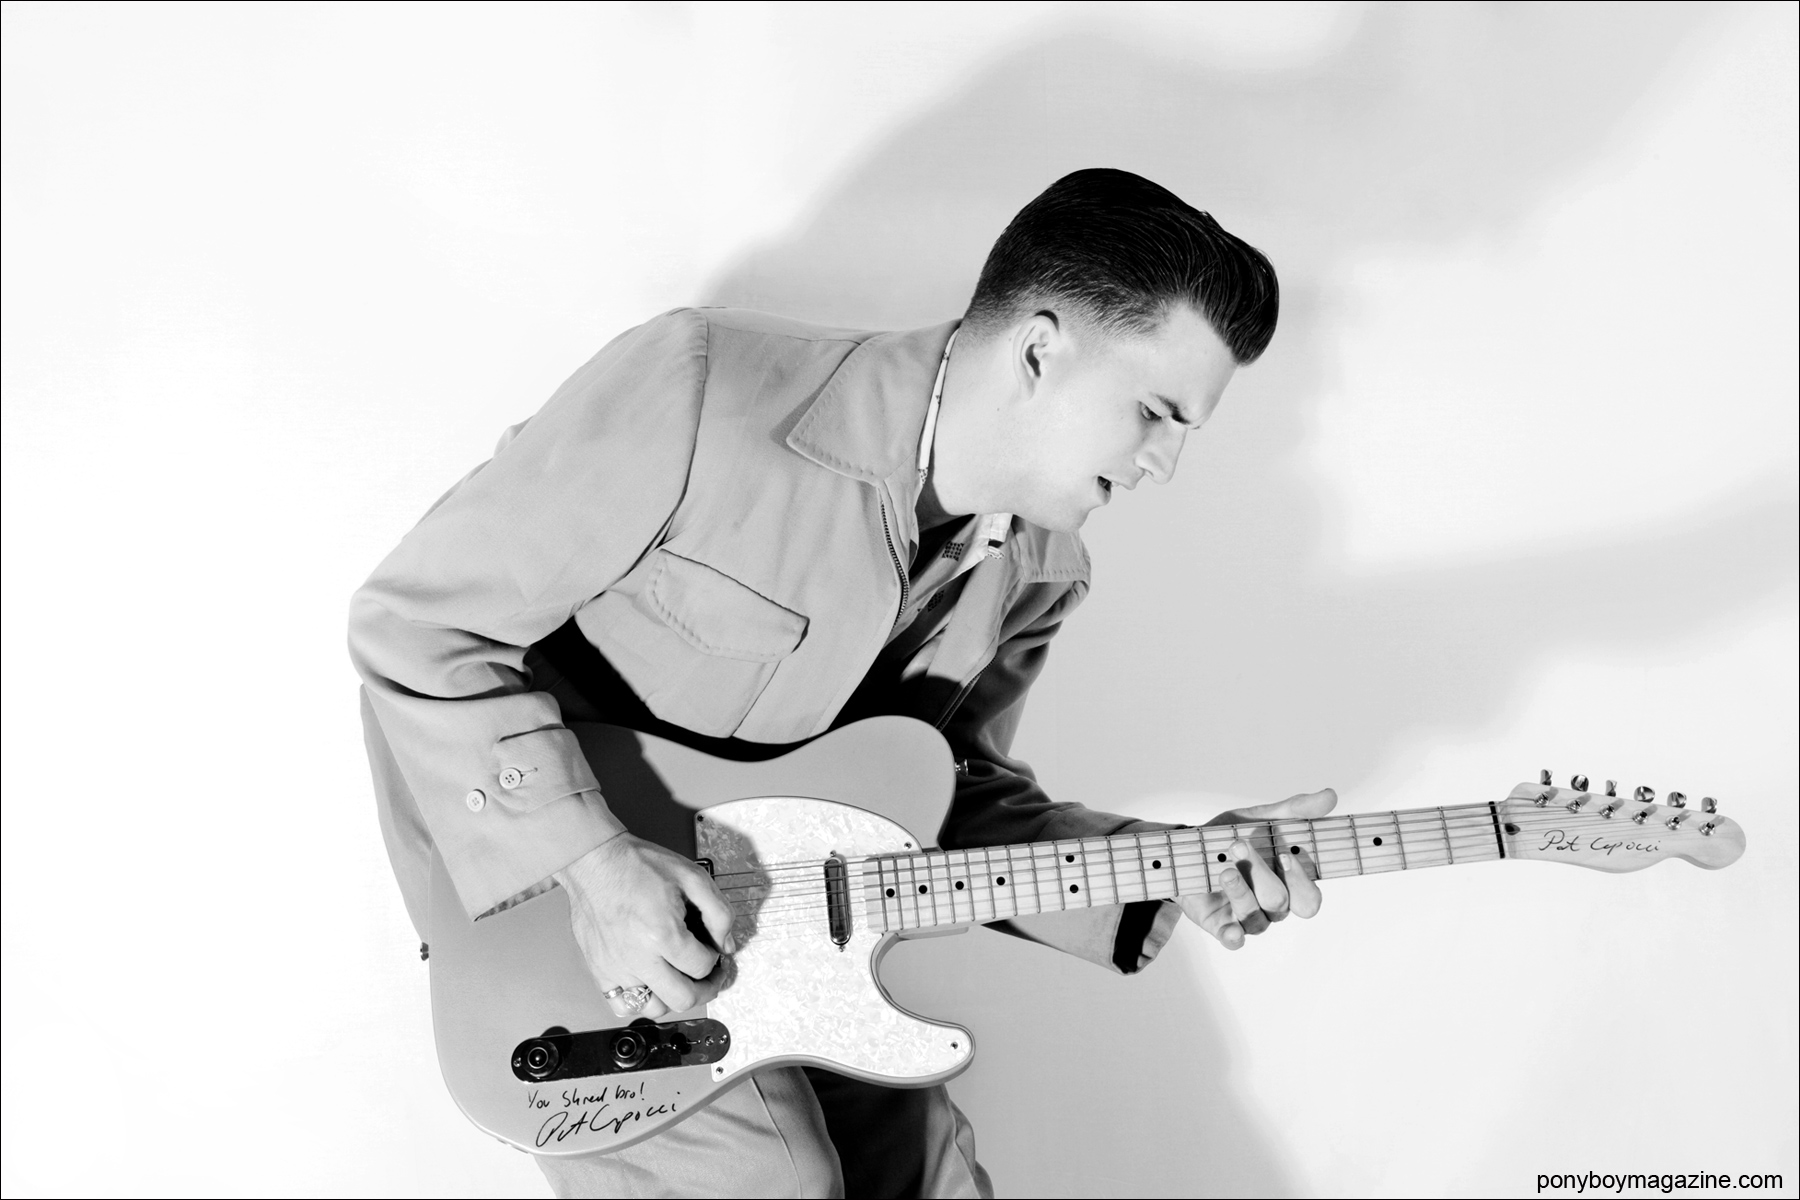 Rockabilly musician Josh Hi-Fil Sorheim photographed by Alexander Thompson for Ponyboy Magazine.